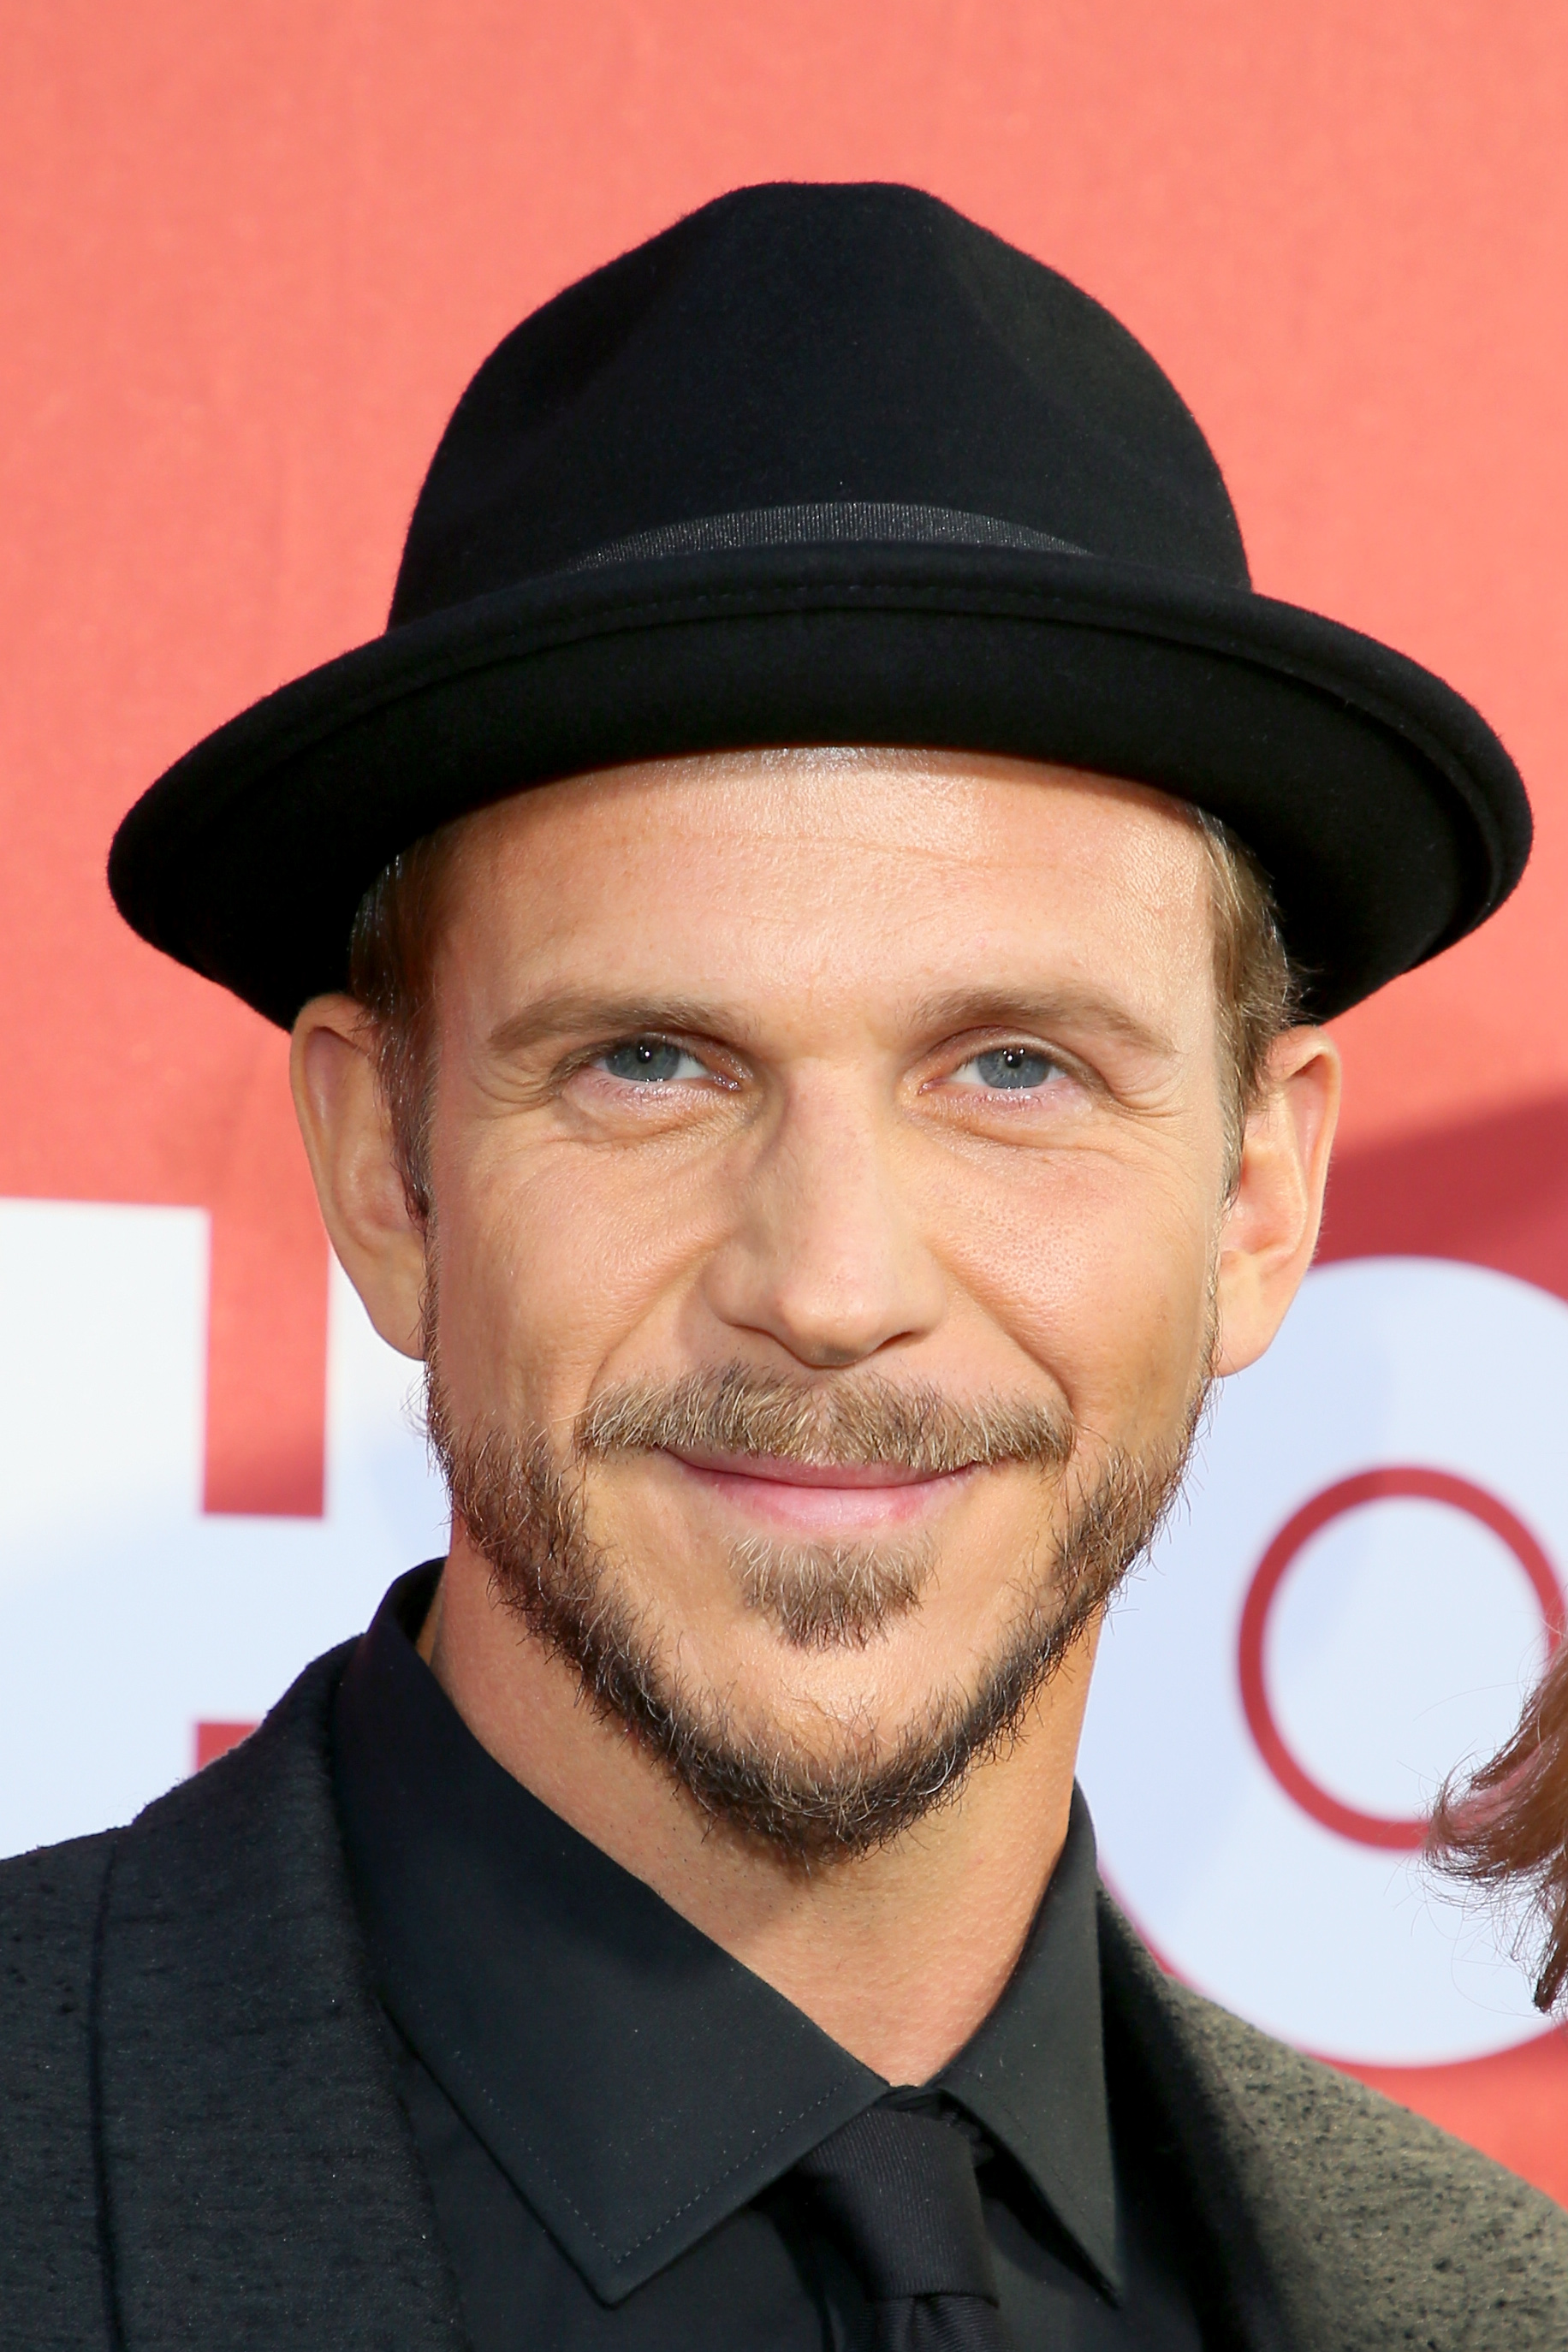 Gustaf Skarsgard attends the premiere of HBO's 'Westworld' Season 2 at The Cinerama Dome on April 16, 2018 in Los Angeles, California. (Getty Images)